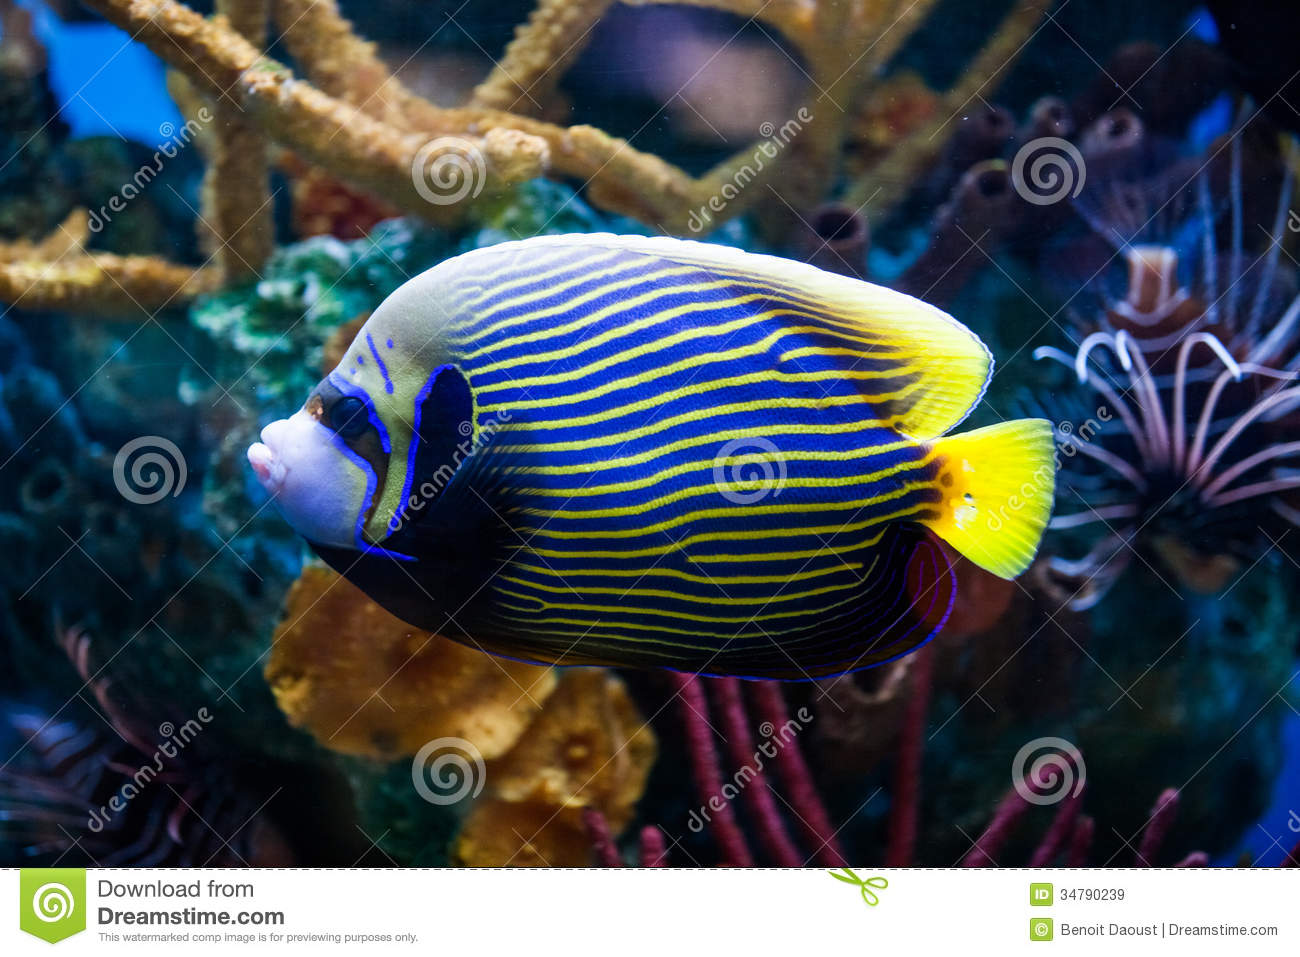 Saltwater aquarium - Imperial Anglefish Closeup In Saltwater Aquarium Royalty Free Stock Images